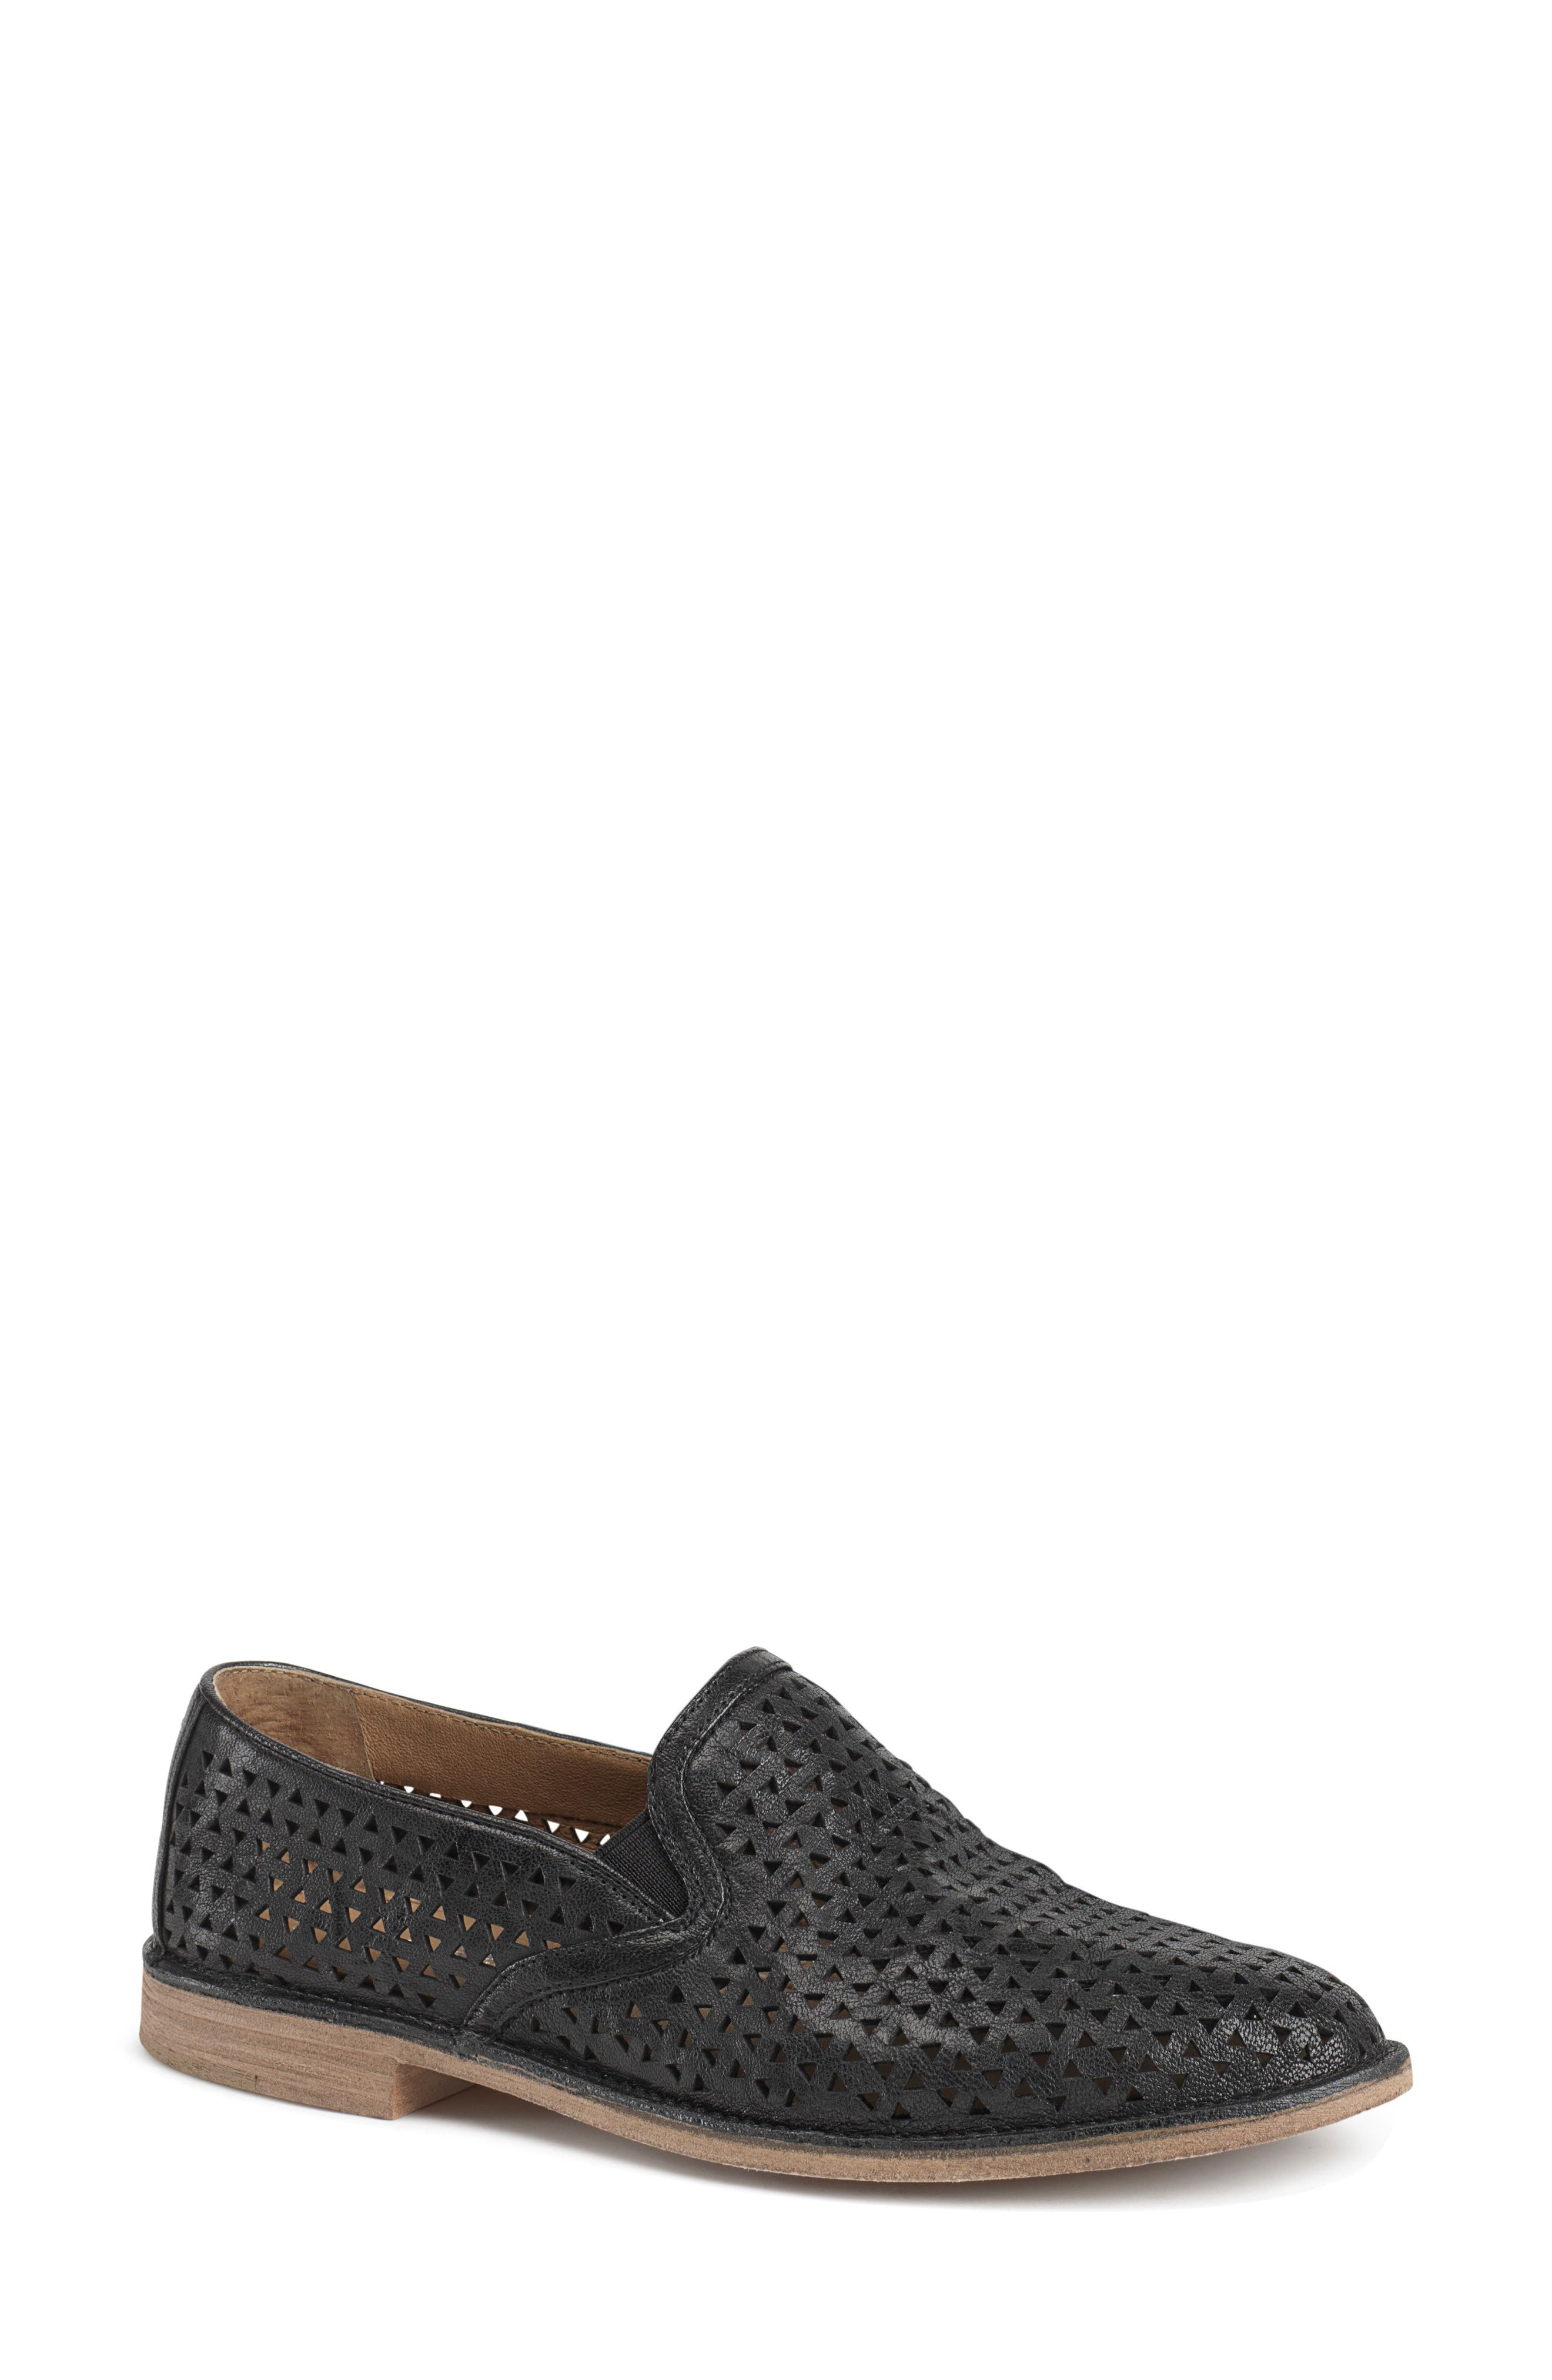 'Ali' Perforated Loafer,                         Main,                         color, Black Leather